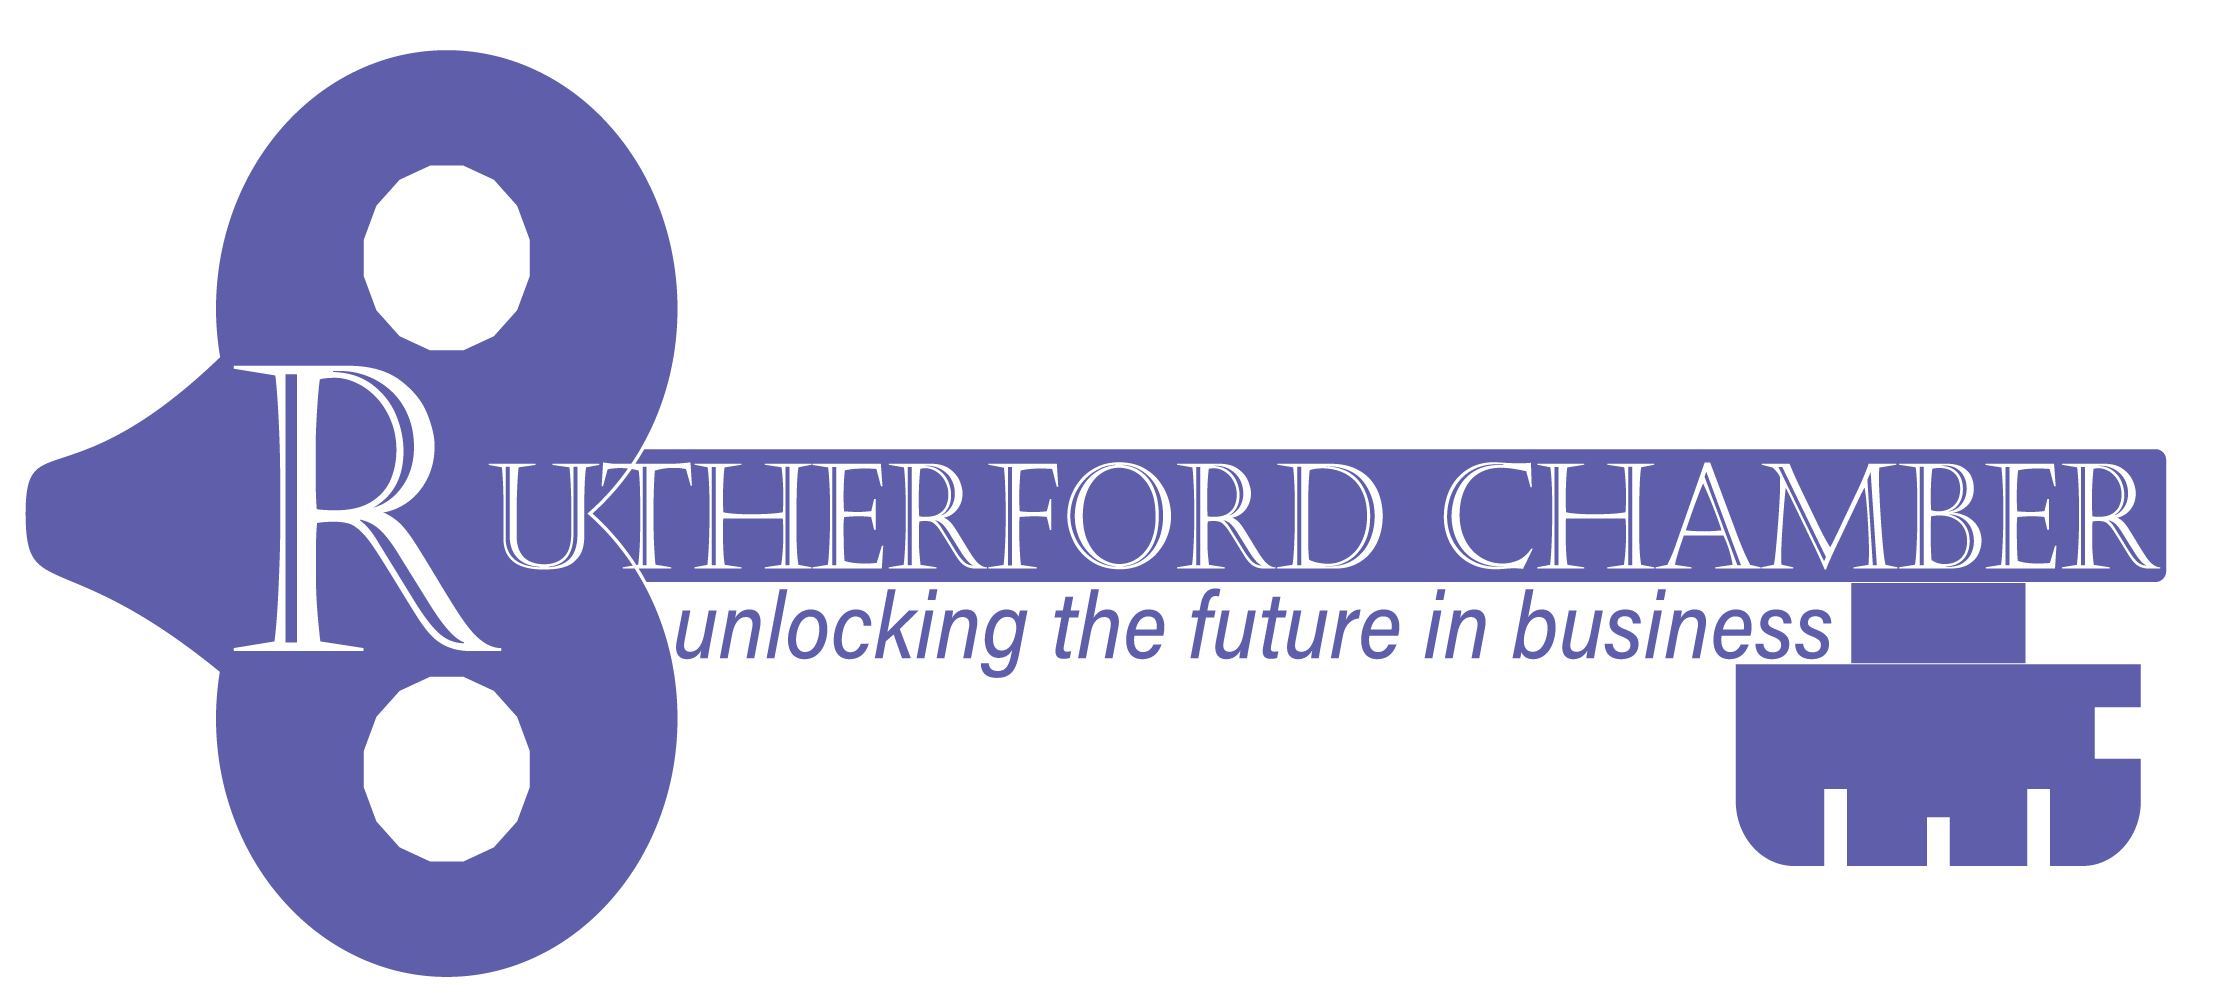 Rutherford-Chamber-BusLOGO